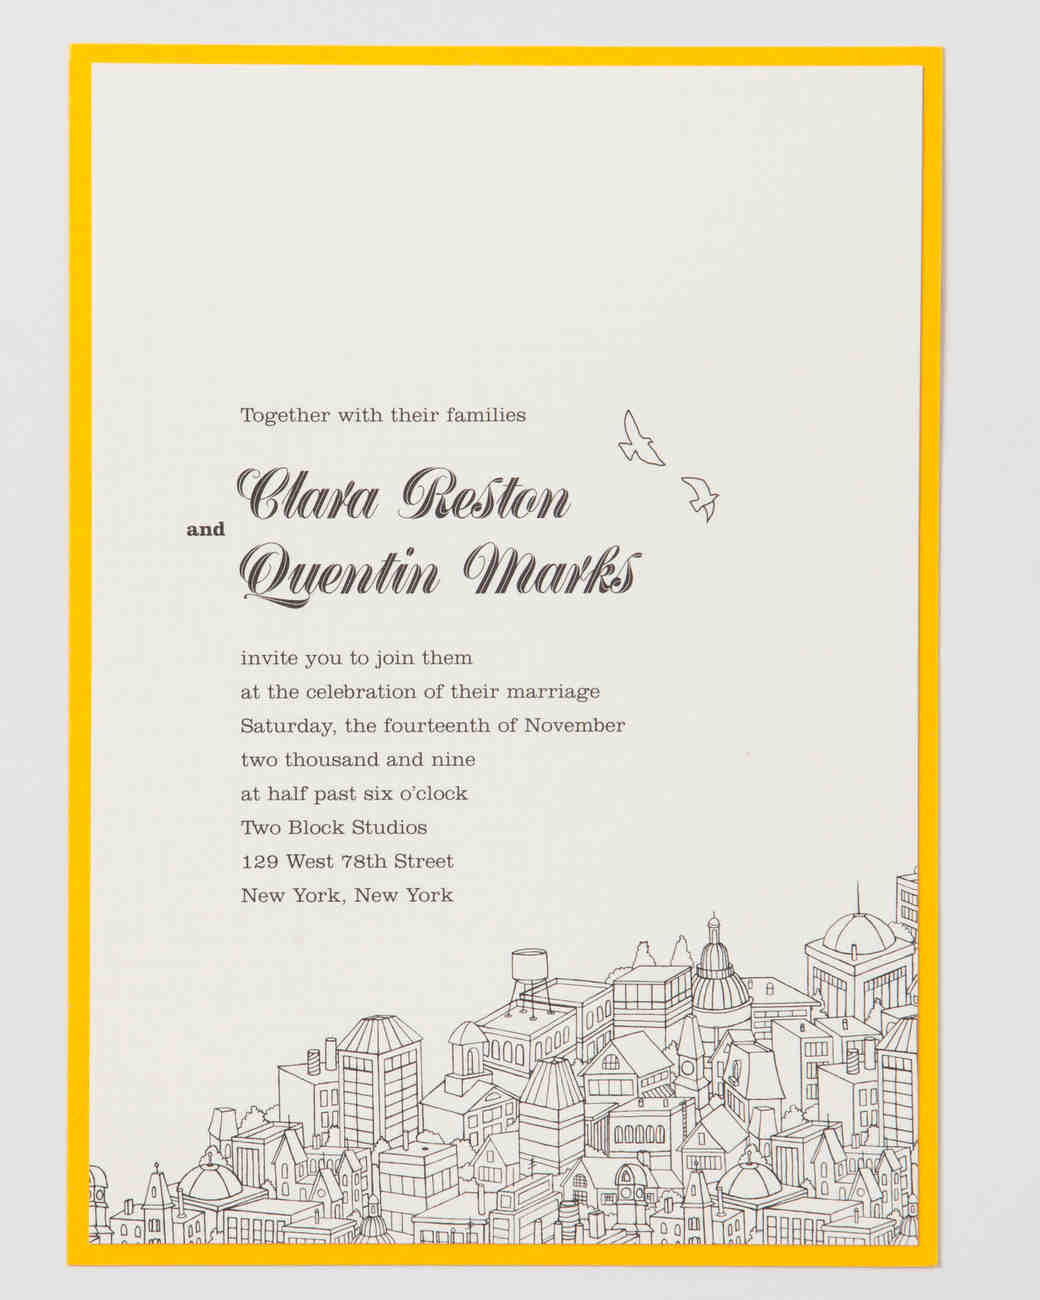 host-lines-weddings-stationery-5-couple-with-parents-0532-d111607-1014.jpg